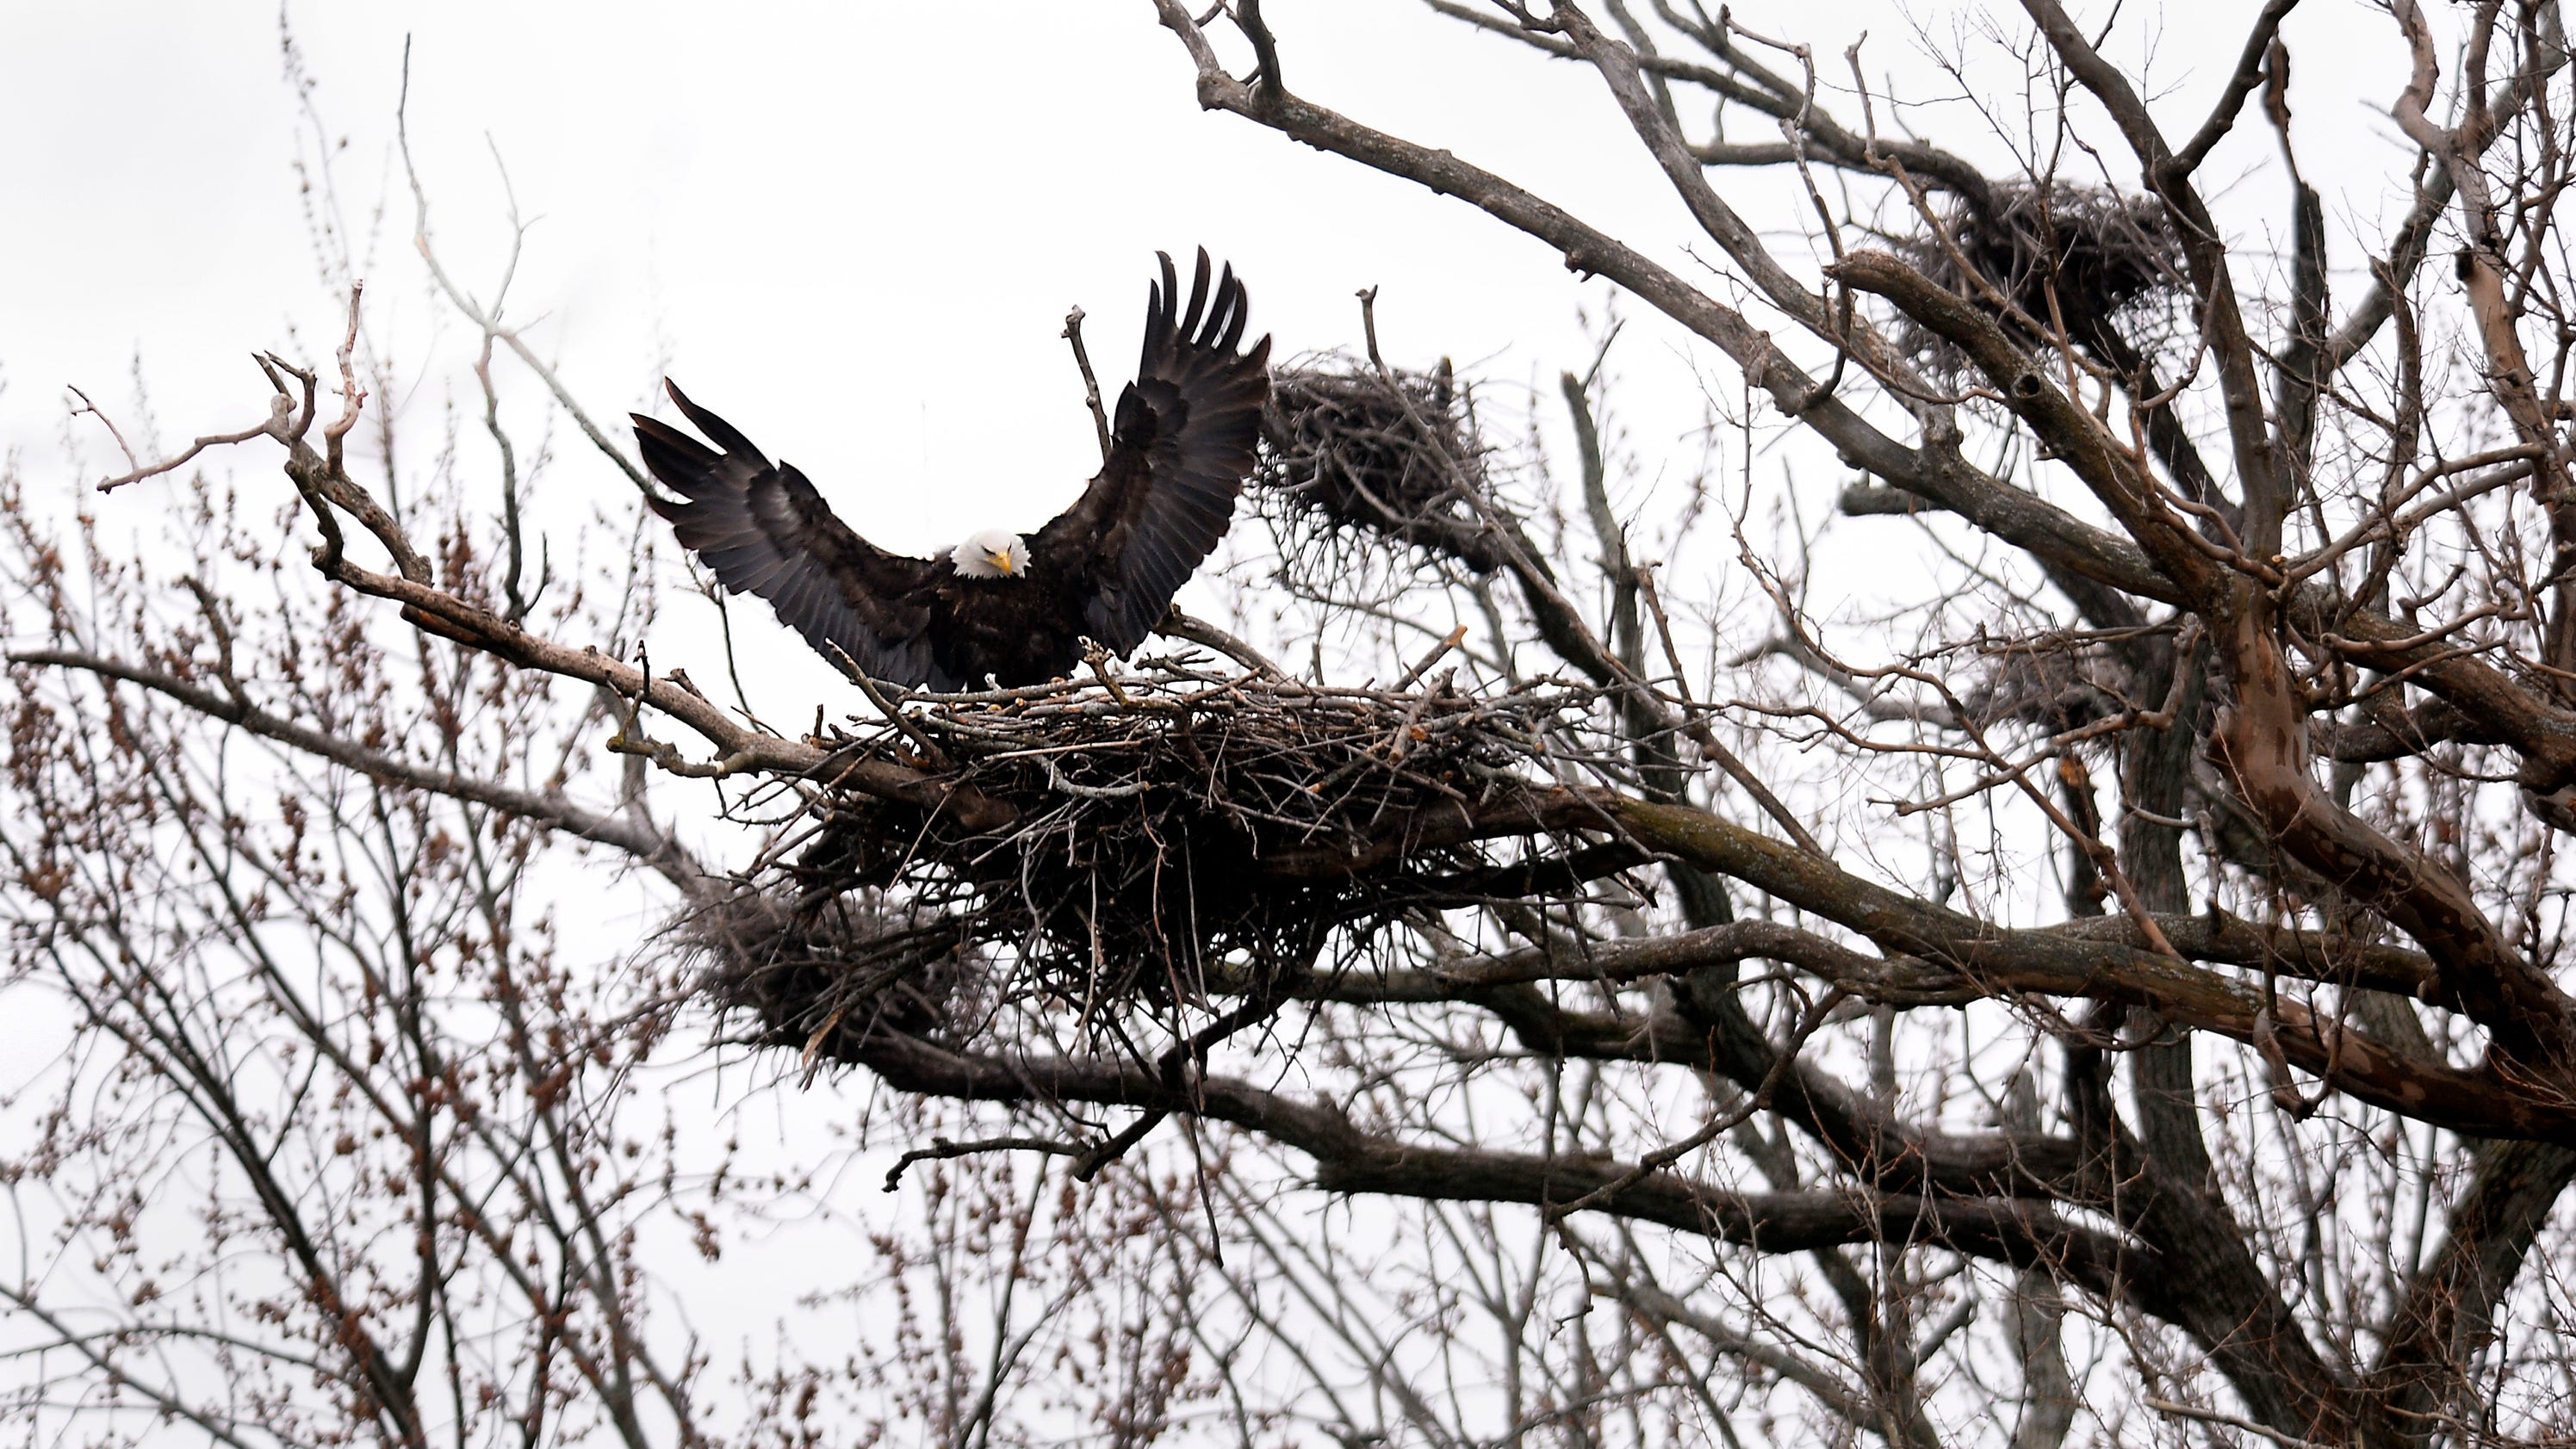 nesting eagles draw crowds along the river trail